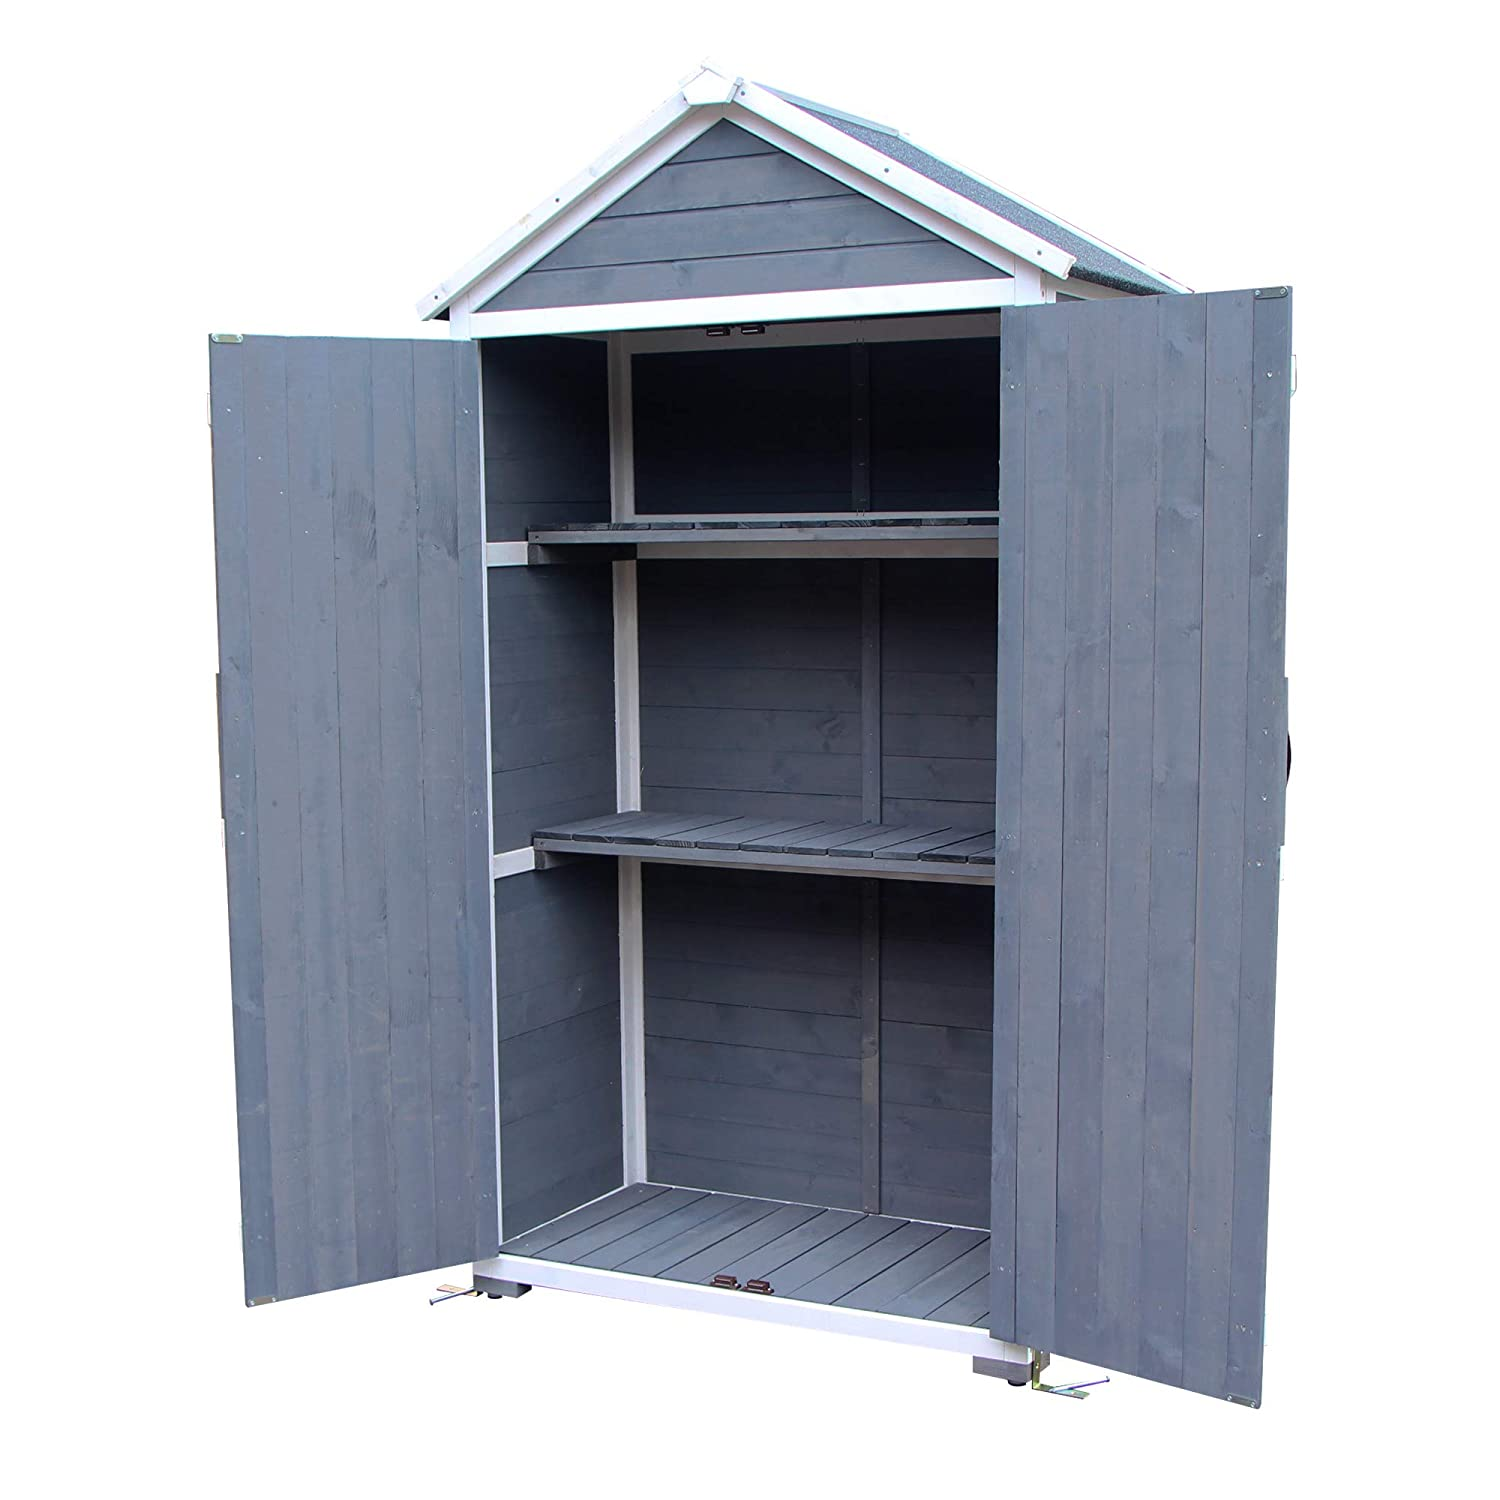 Grey MCombo Outdoor Storage Cabinet Tool Sheds Backyard Garden Utility Wooden Organizer with Lockable Double Doors 1000